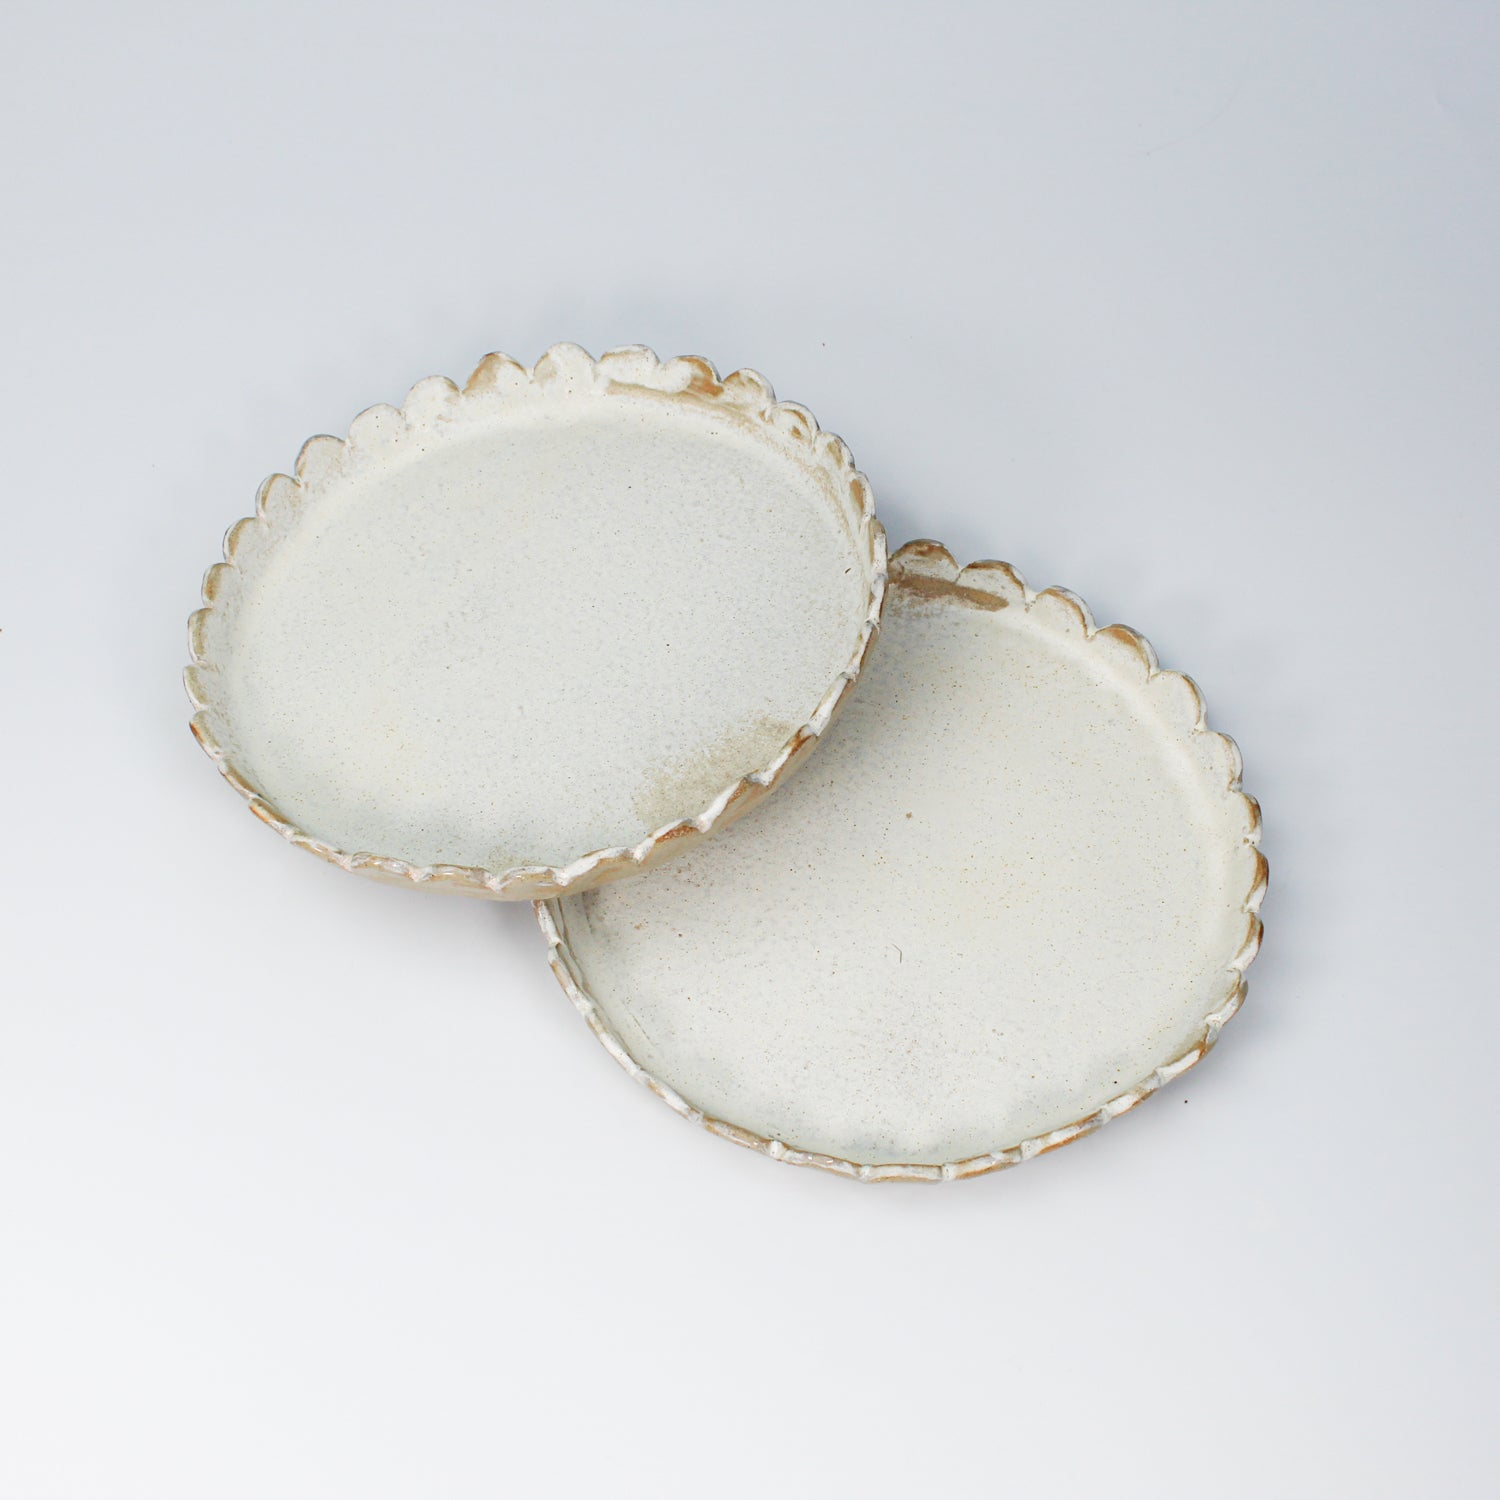 Pair of white ceramic side plates with scalloped edges